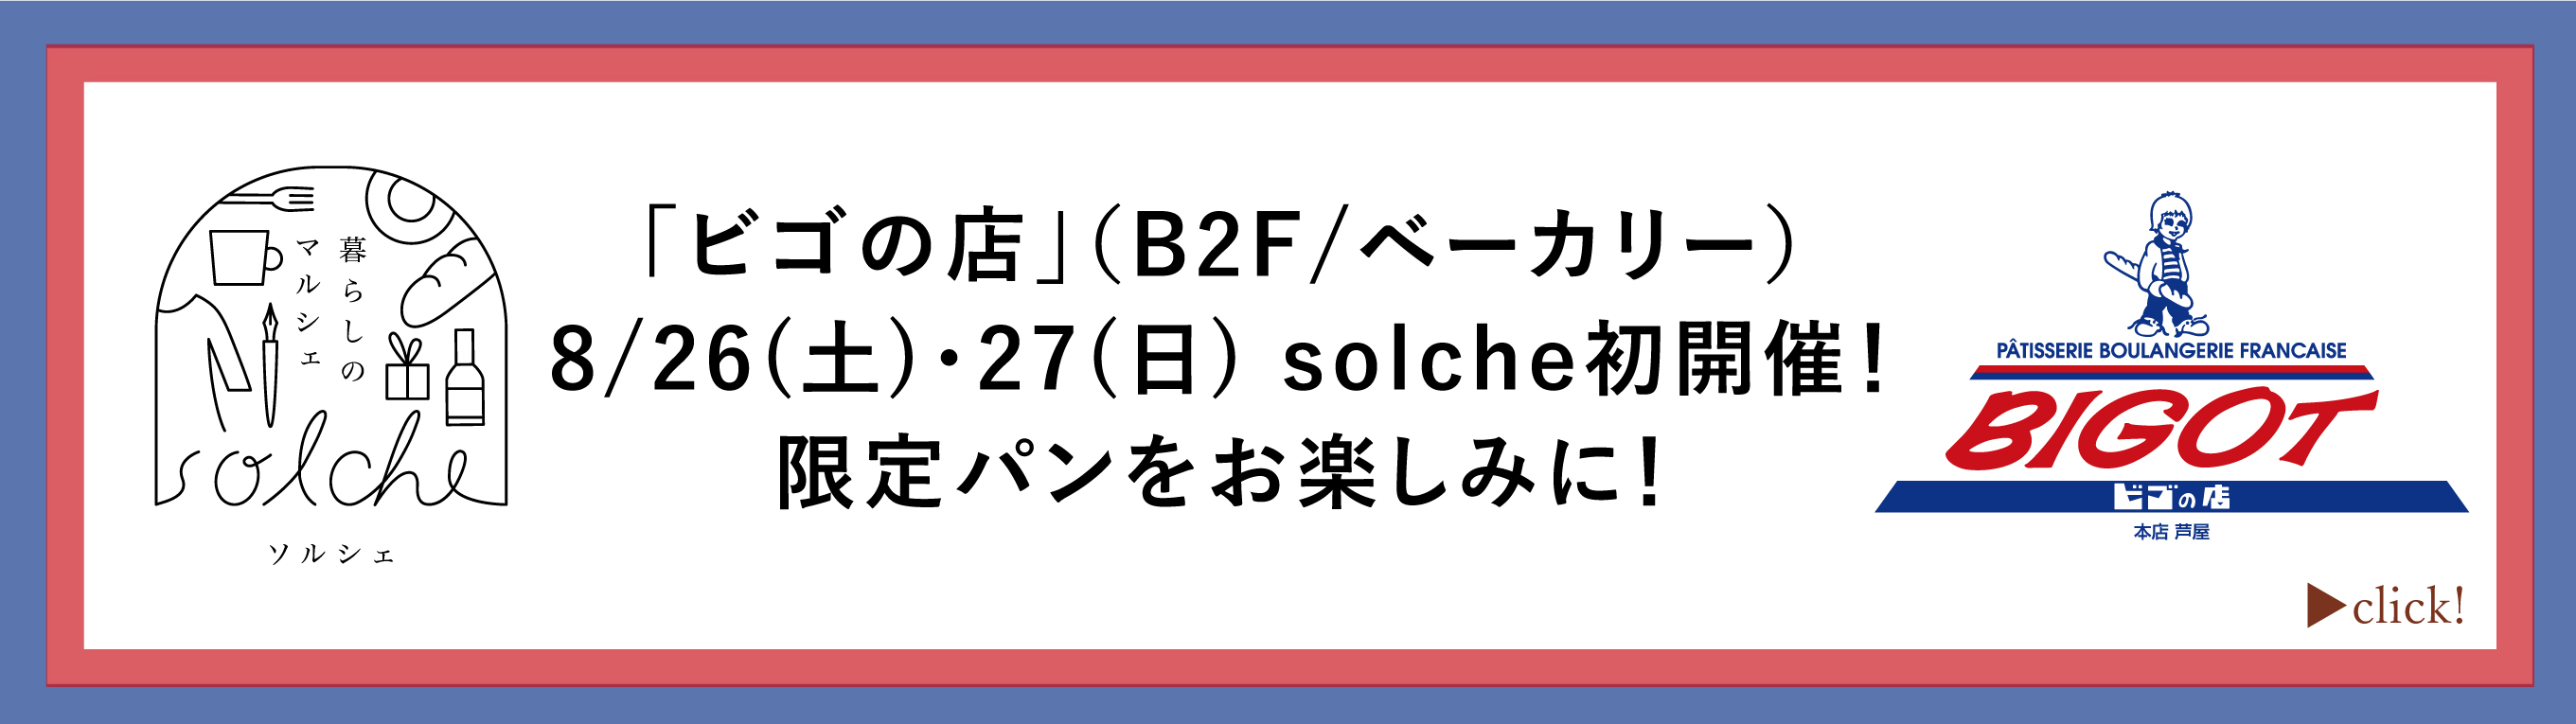 0826solcheビゴ